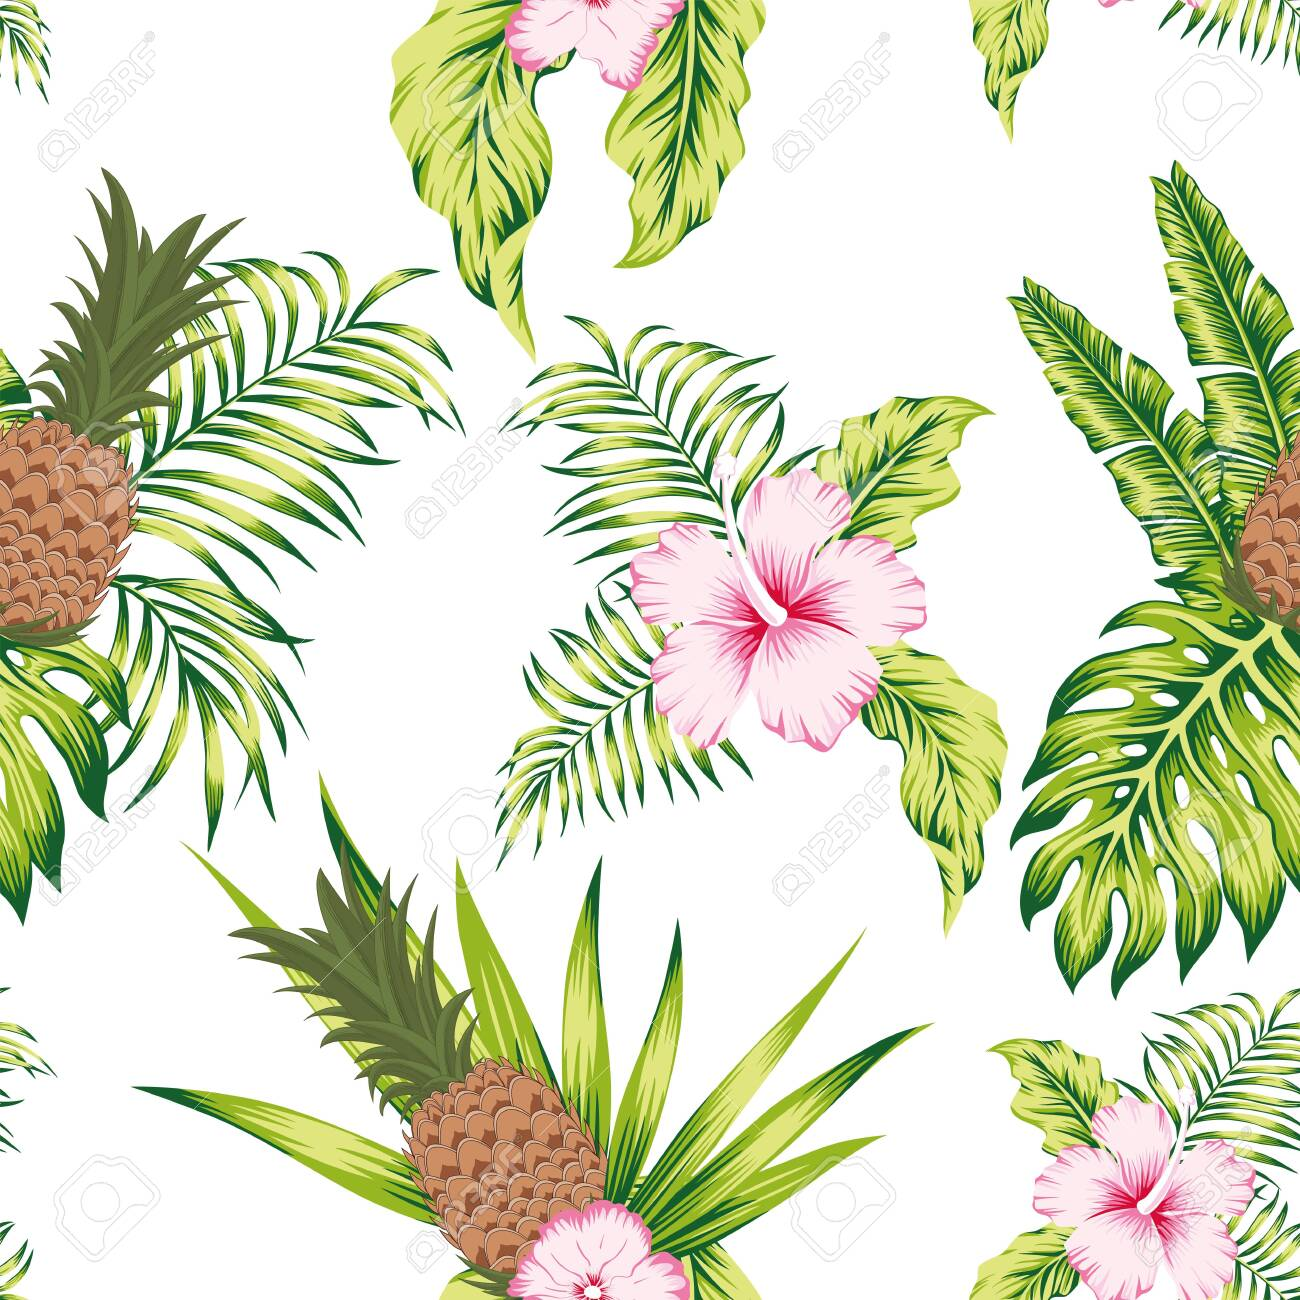 Trendy tropical botanical seamless vector pattern exotic trendy design hibiscus flowers, banana leaves and pineapple on the white background - 122038733